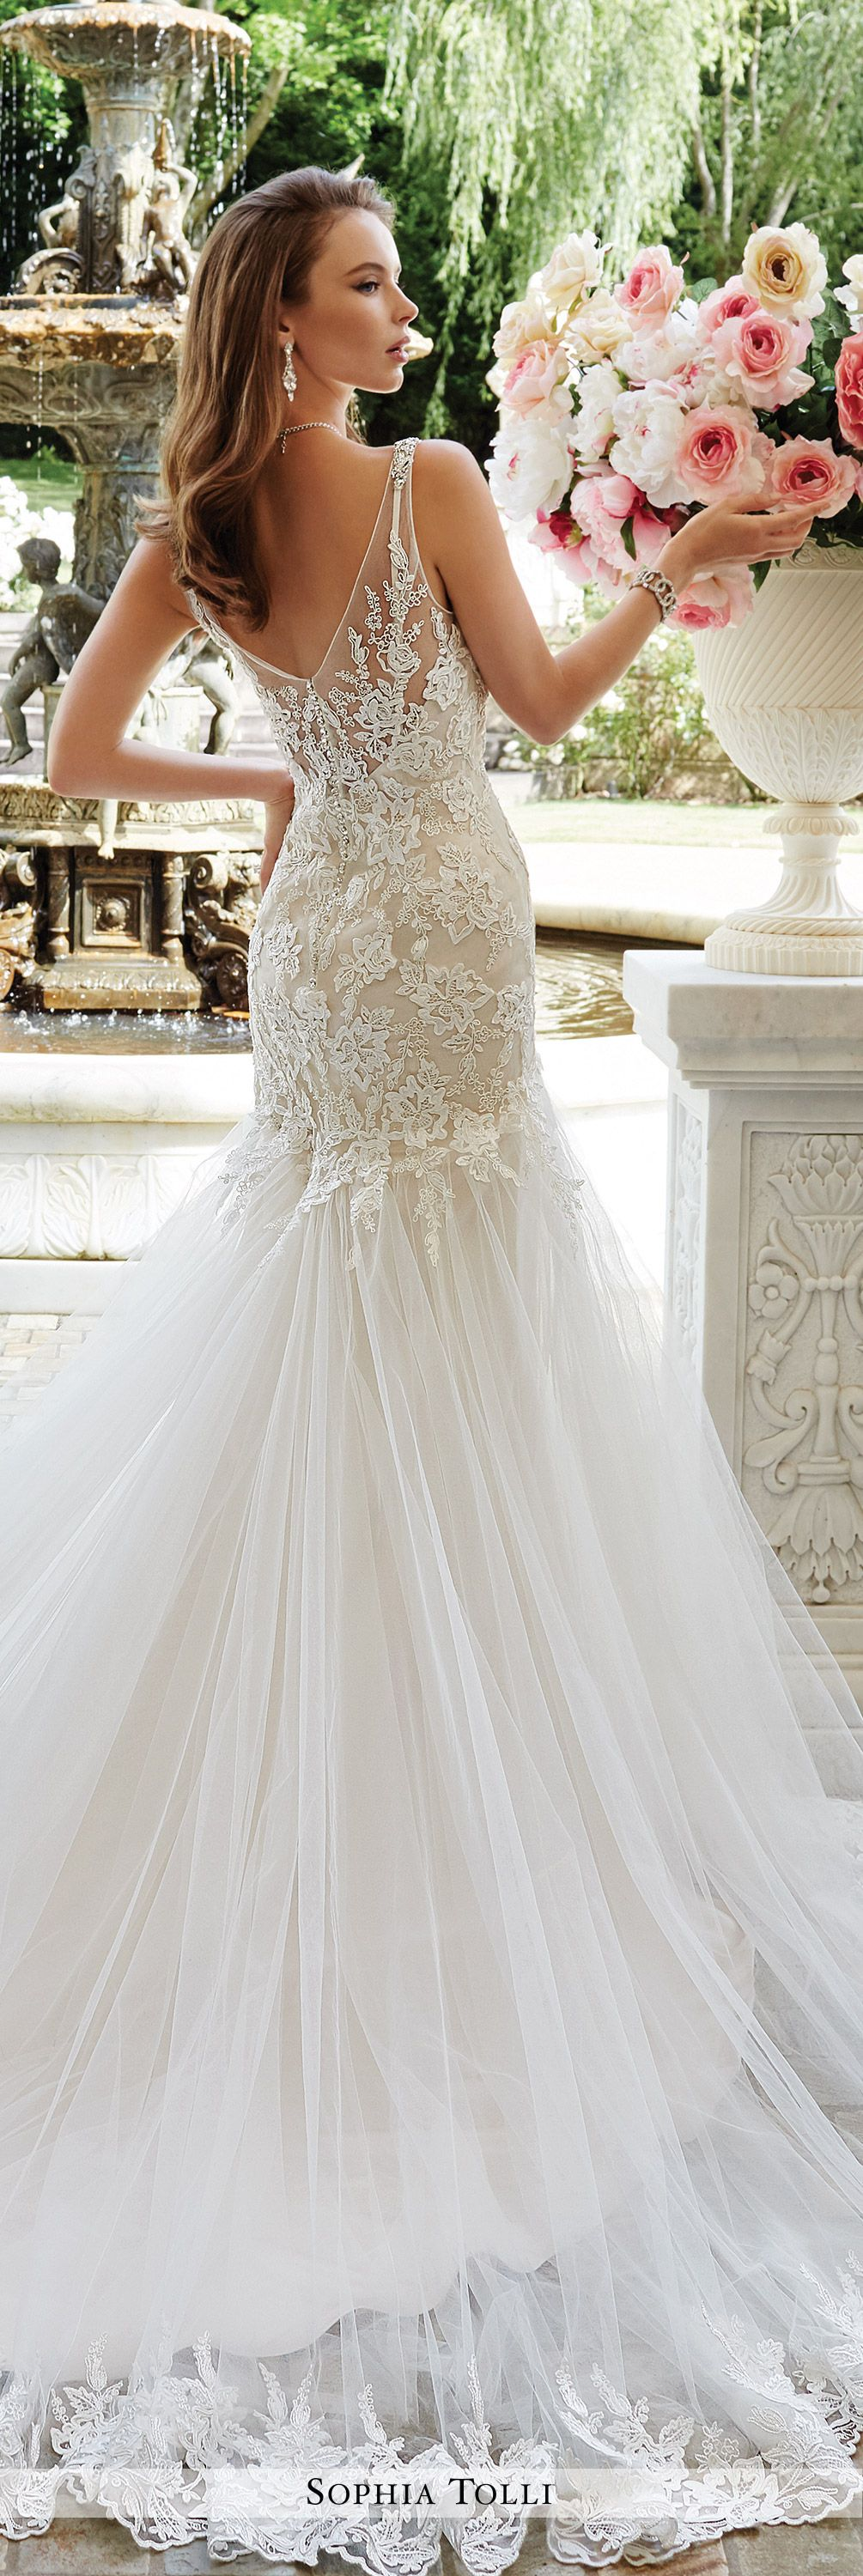 best images about sophia tolli bridal tulle 17 best images about sophia tolli bridal tulle wedding dresses gowns and beaded lace